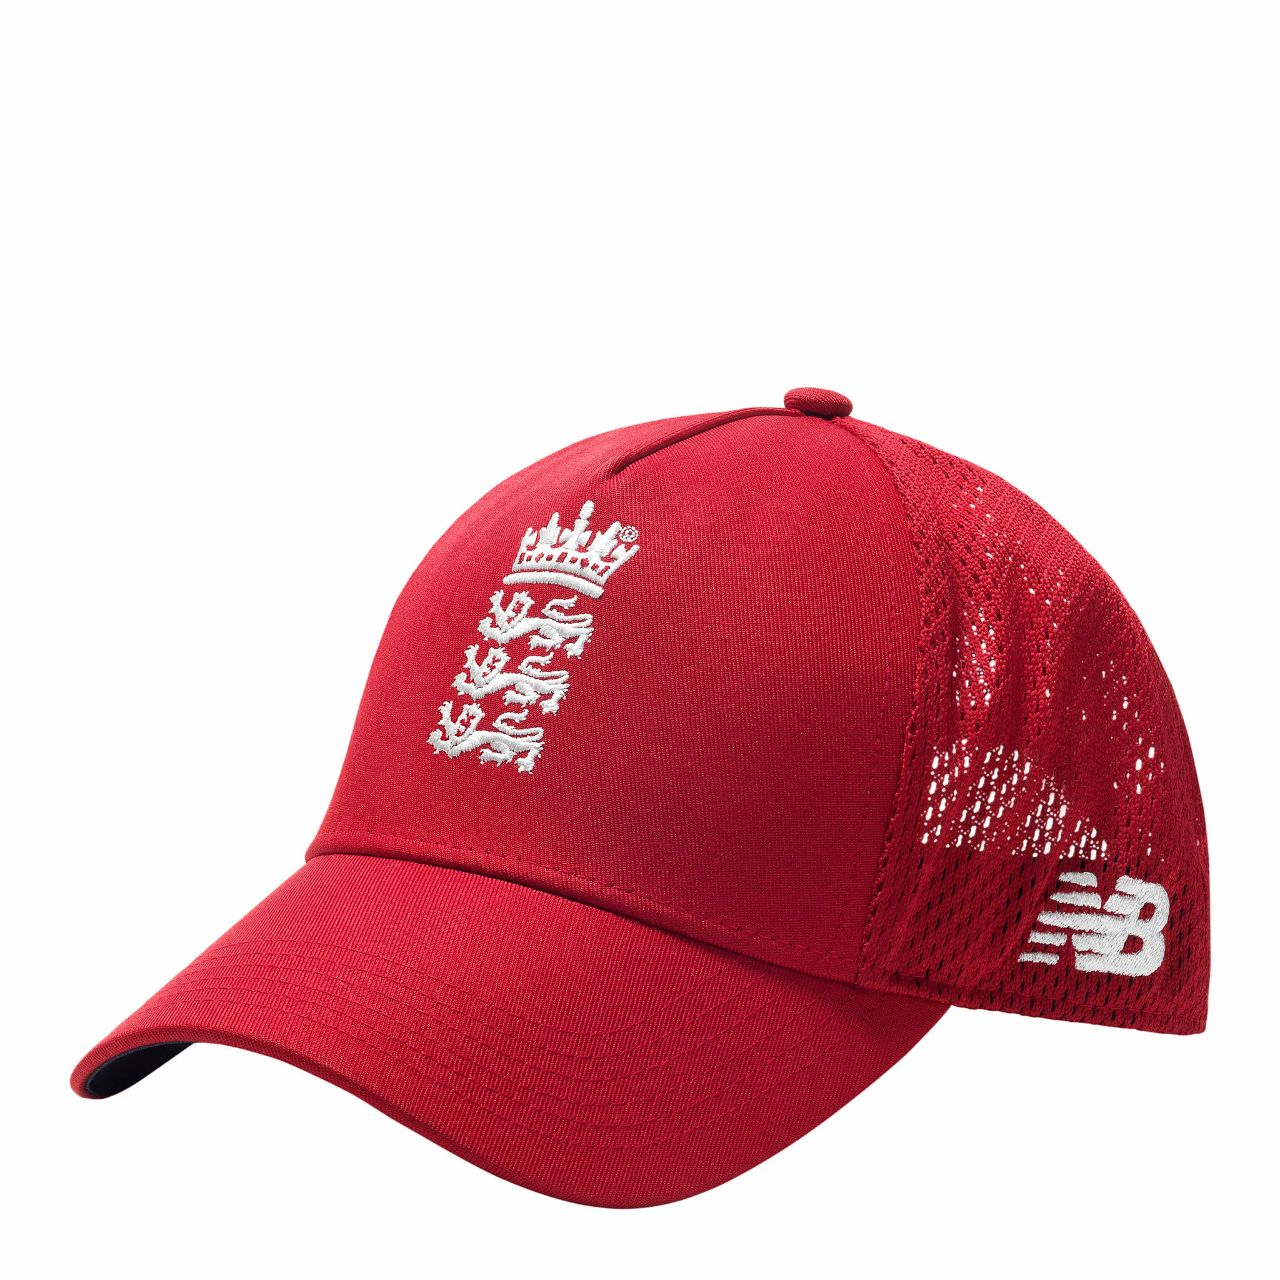 ENGLAND CRICKET T20 CAP RED